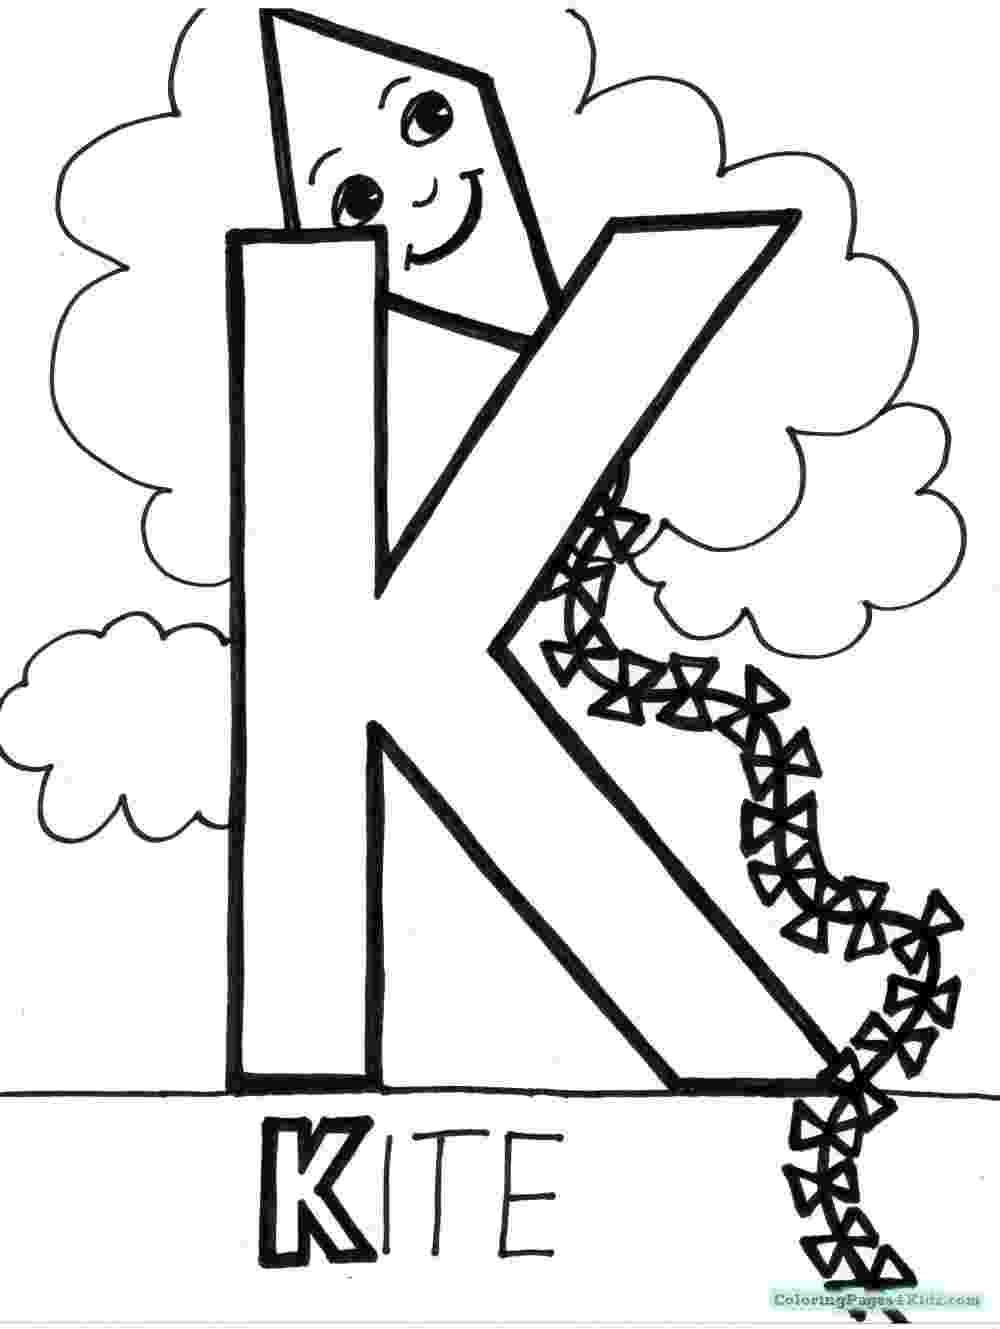 letter k coloring pages letter k is for kite coloring page free printable pages letter coloring k